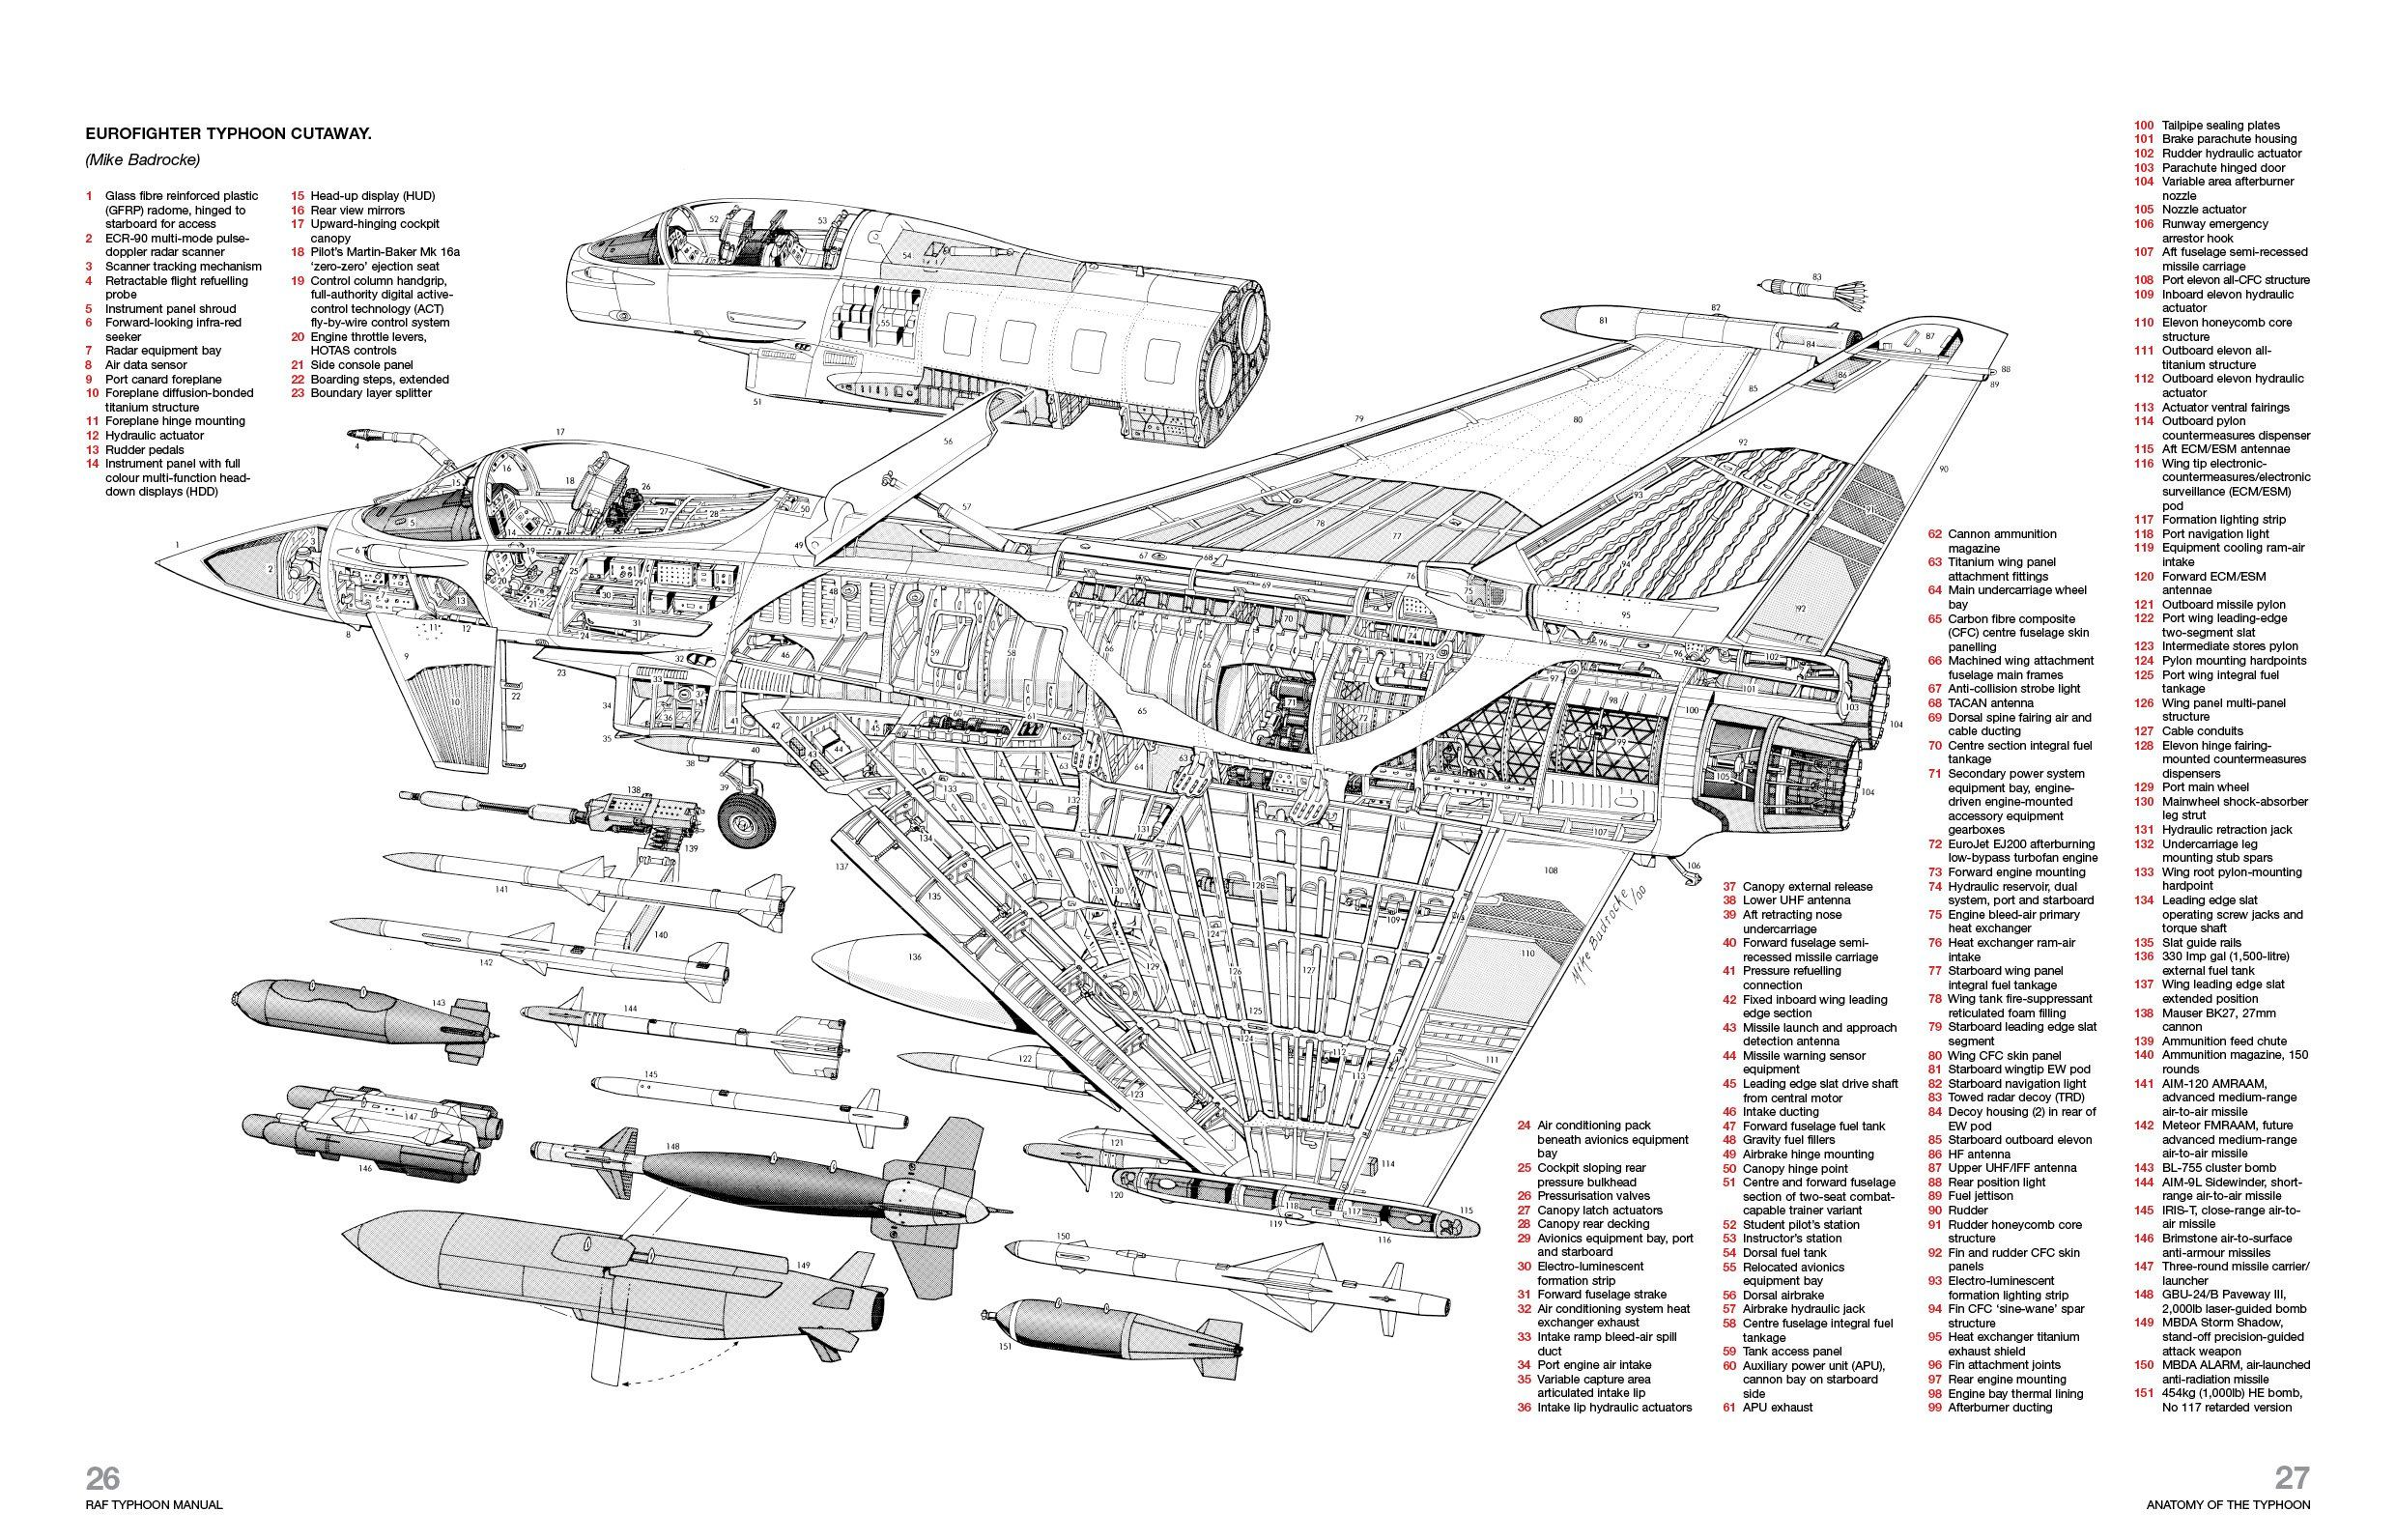 small resolution of eurofighter typhoon cutaway military jets military aircraft aircraft design cutaway fighter jets